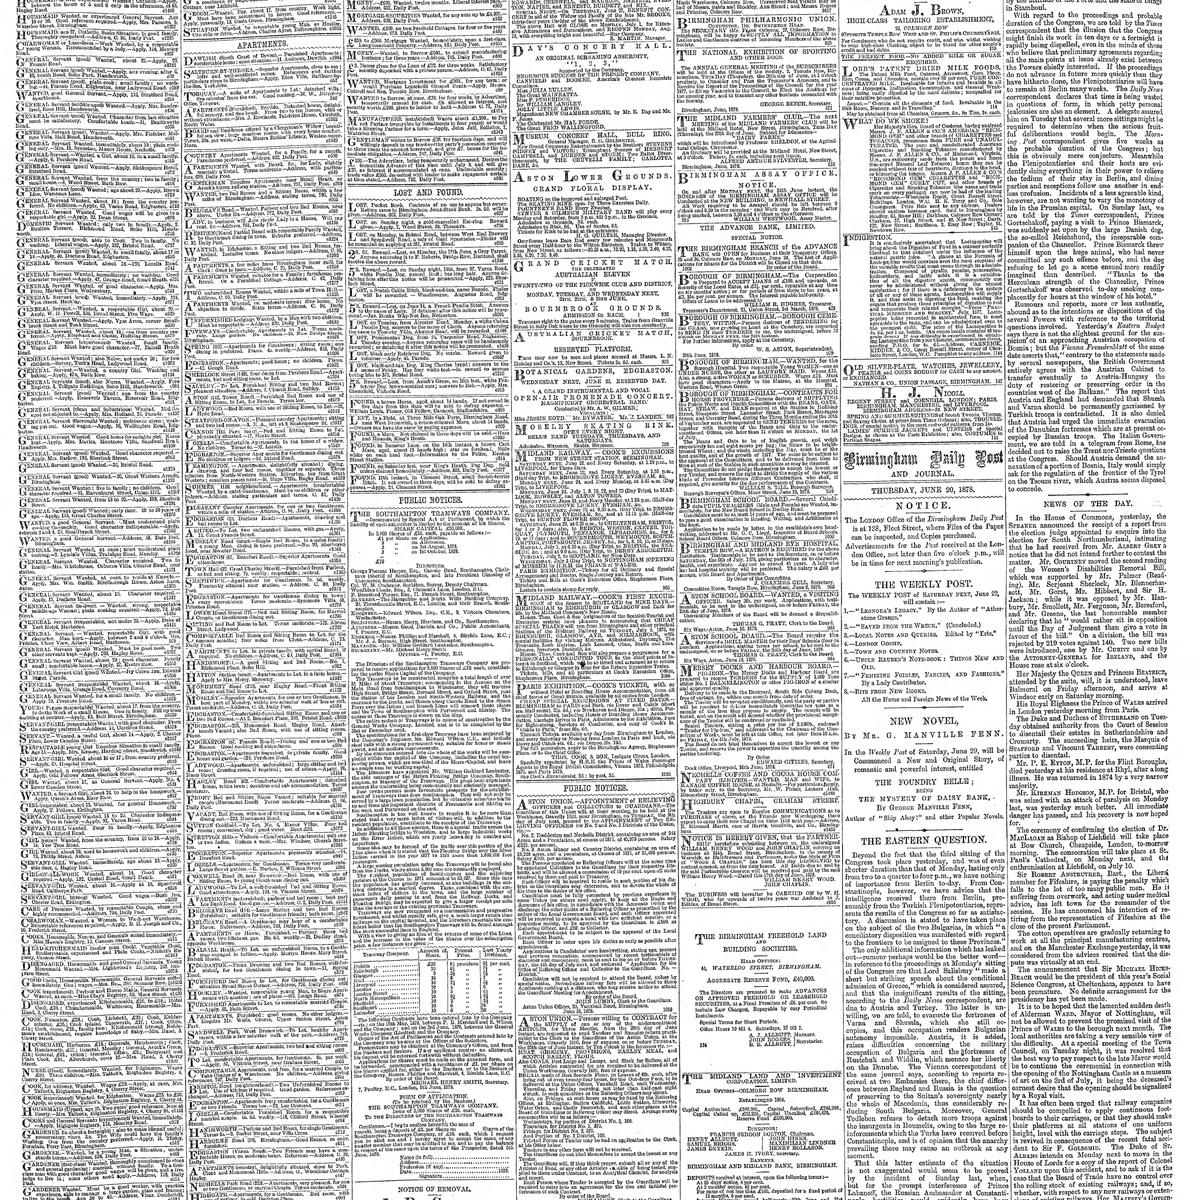 The Birmingham Daily Post, 1878-06-20, page 4